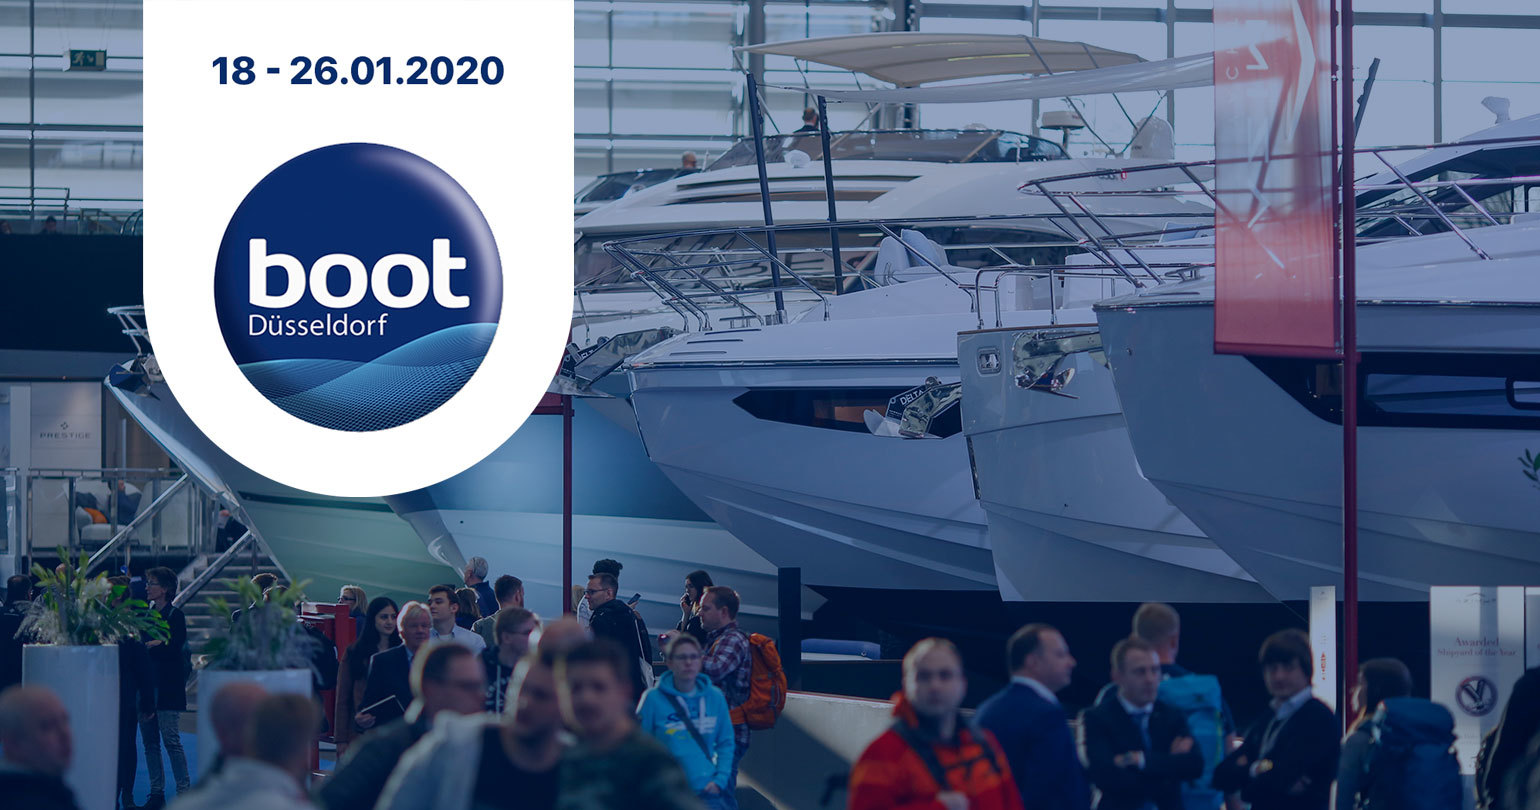 Boot Düsseldorf 2020 - the main European winter boat show